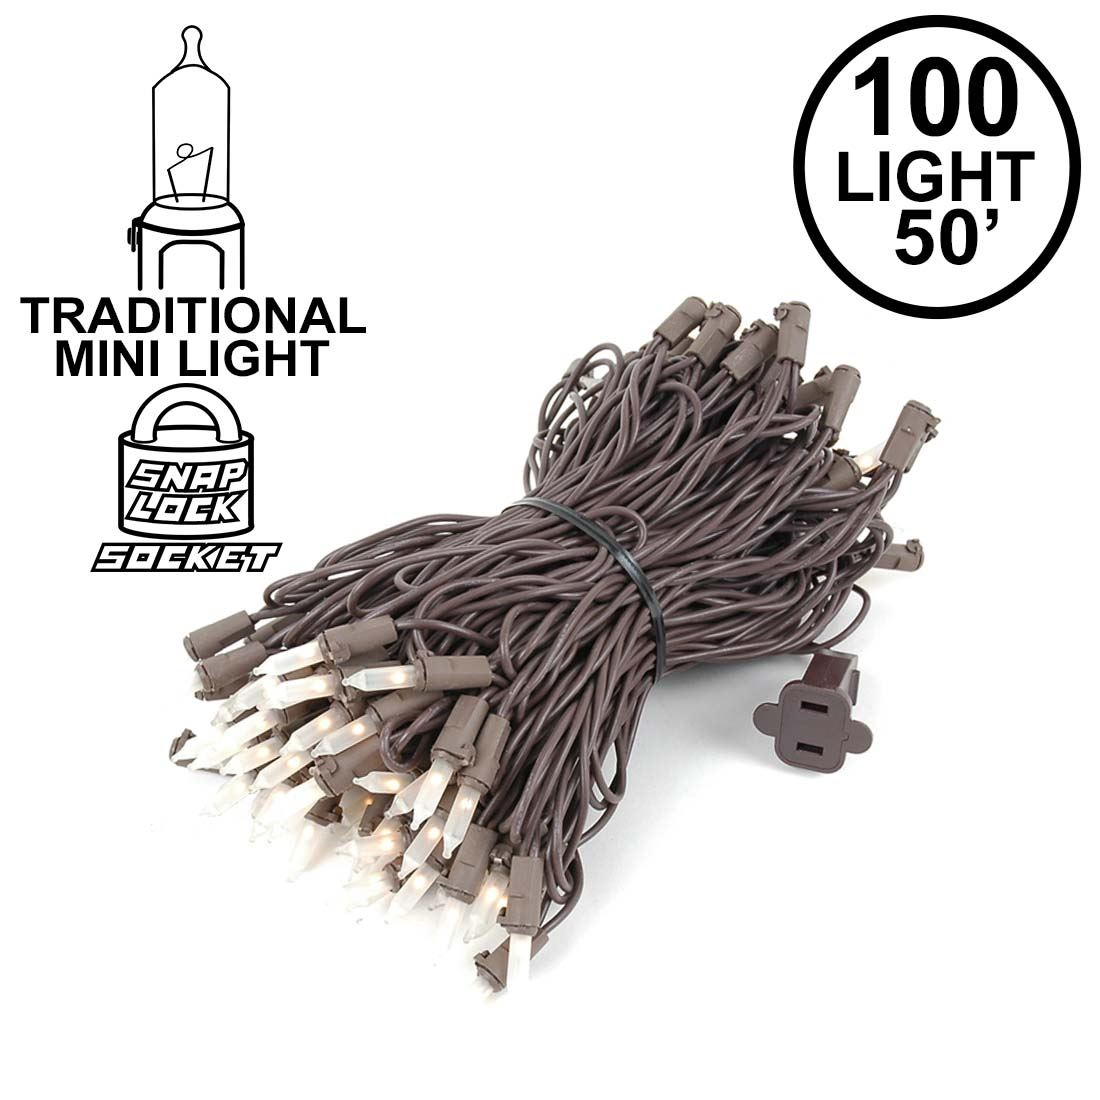 Picture of Frosted Christmas Mini Lights 100 Light 50 Feet Long on Brown Wire